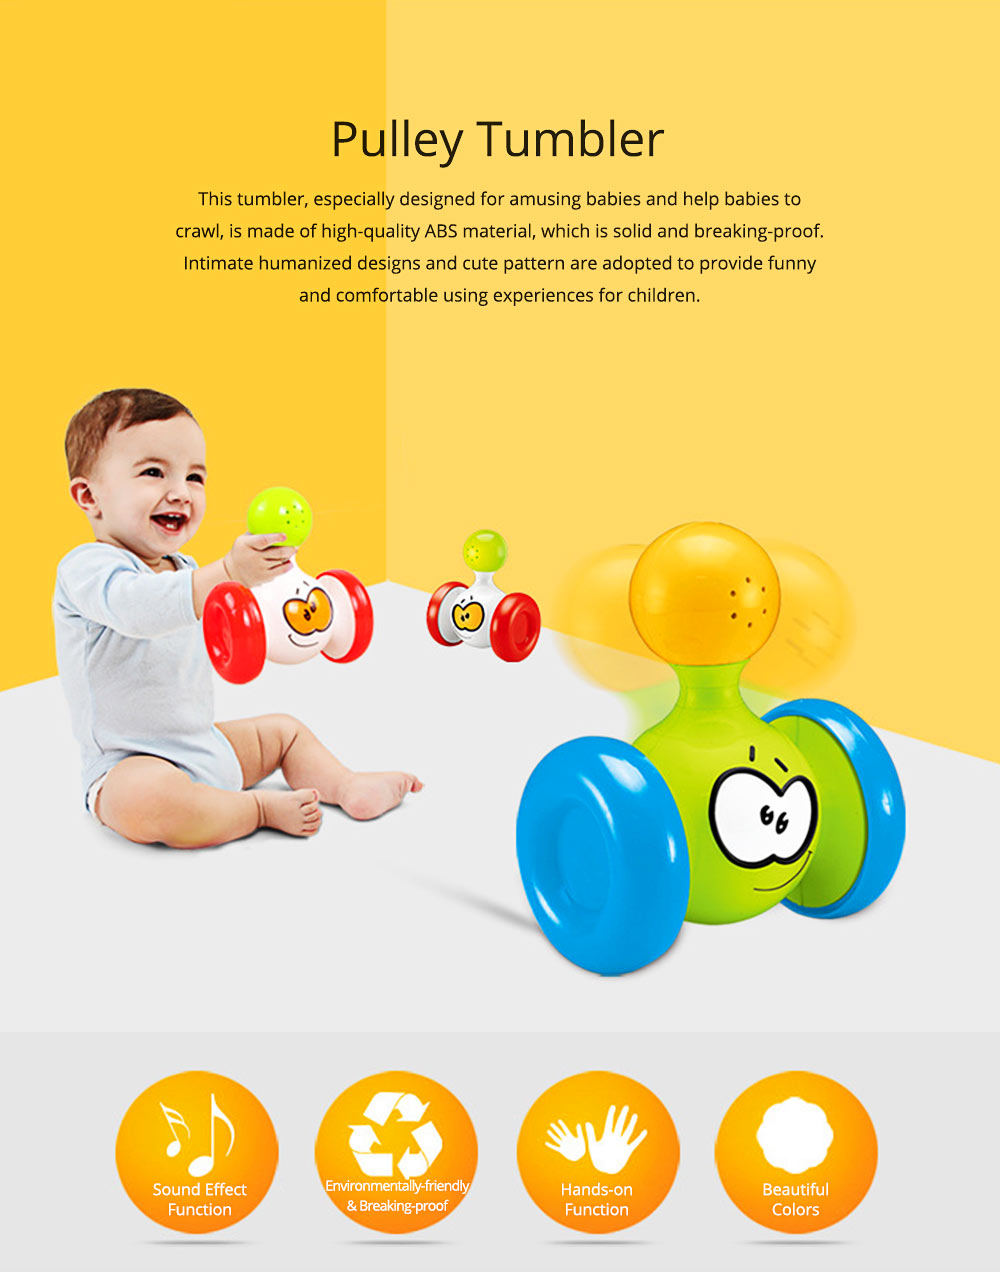 Funny Colorful Solid Plastic Pulley Tumbler Toy, Infants Babies Delicate Early Education Toy with Sound Effect 0